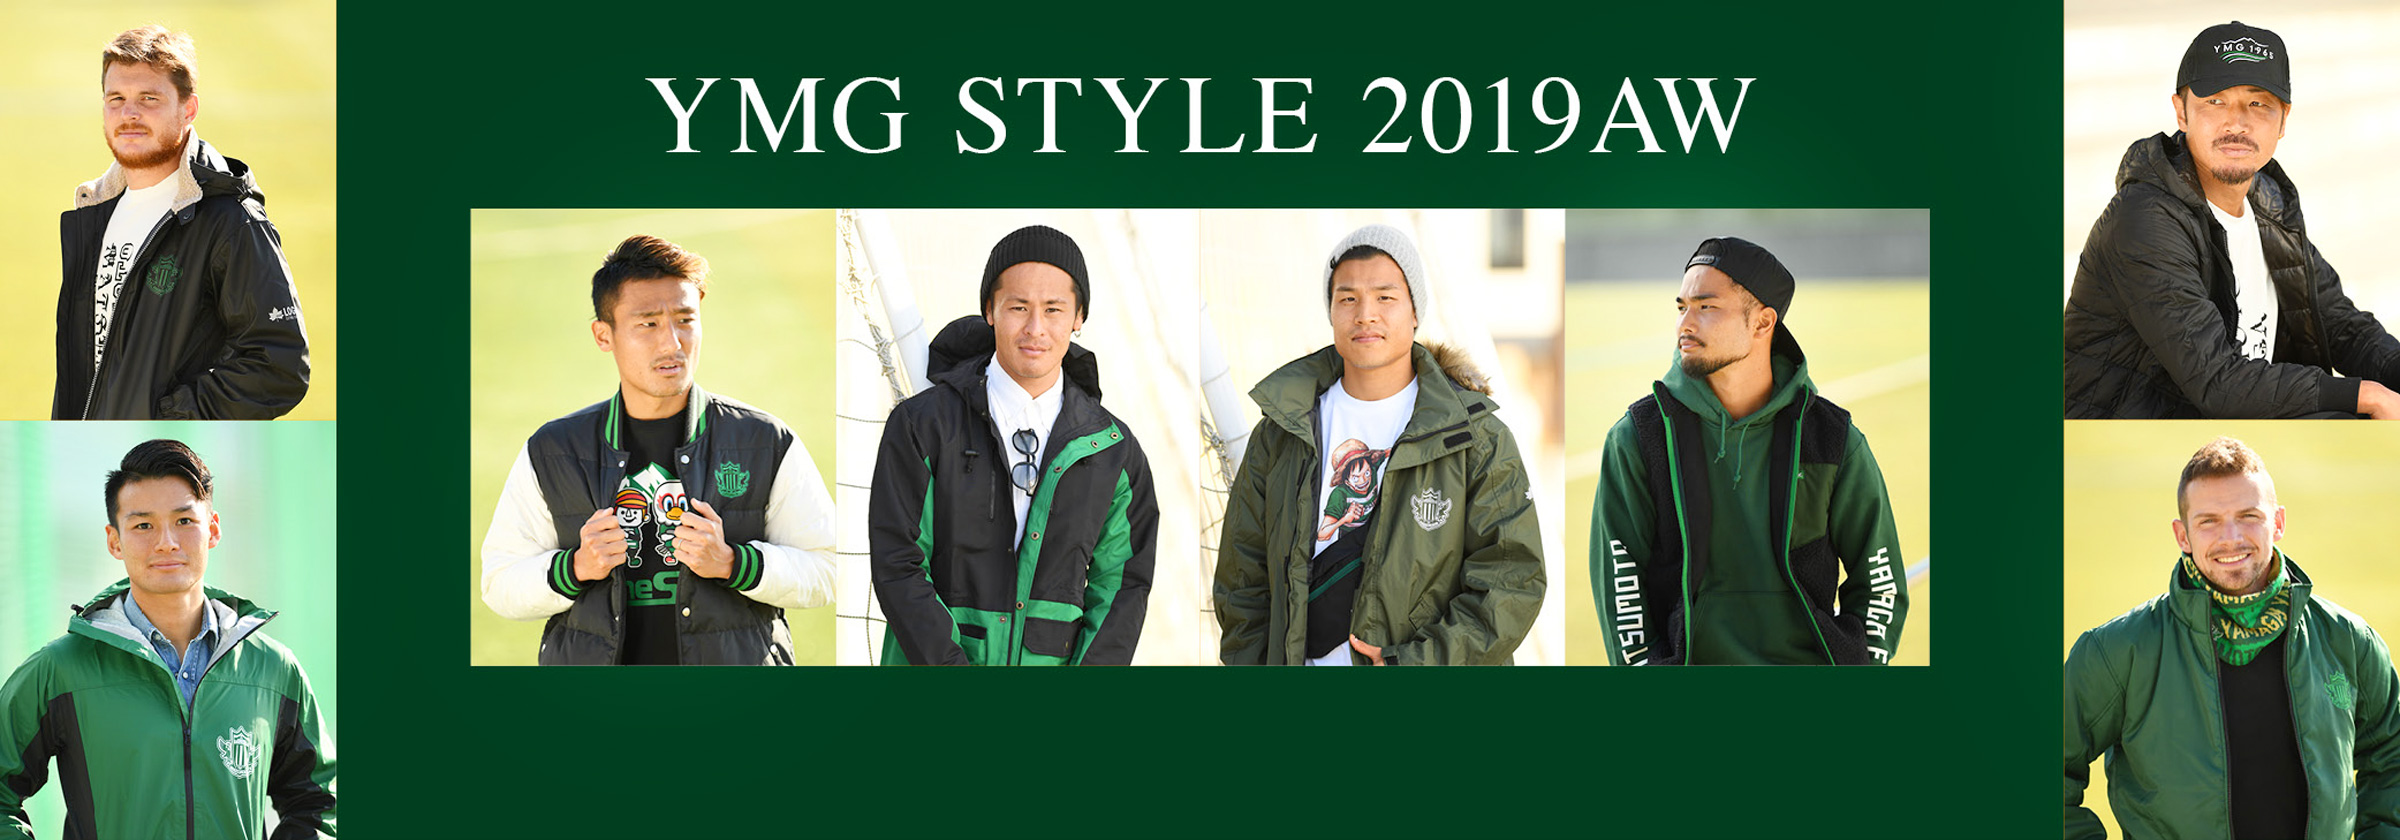 YMG STYLE